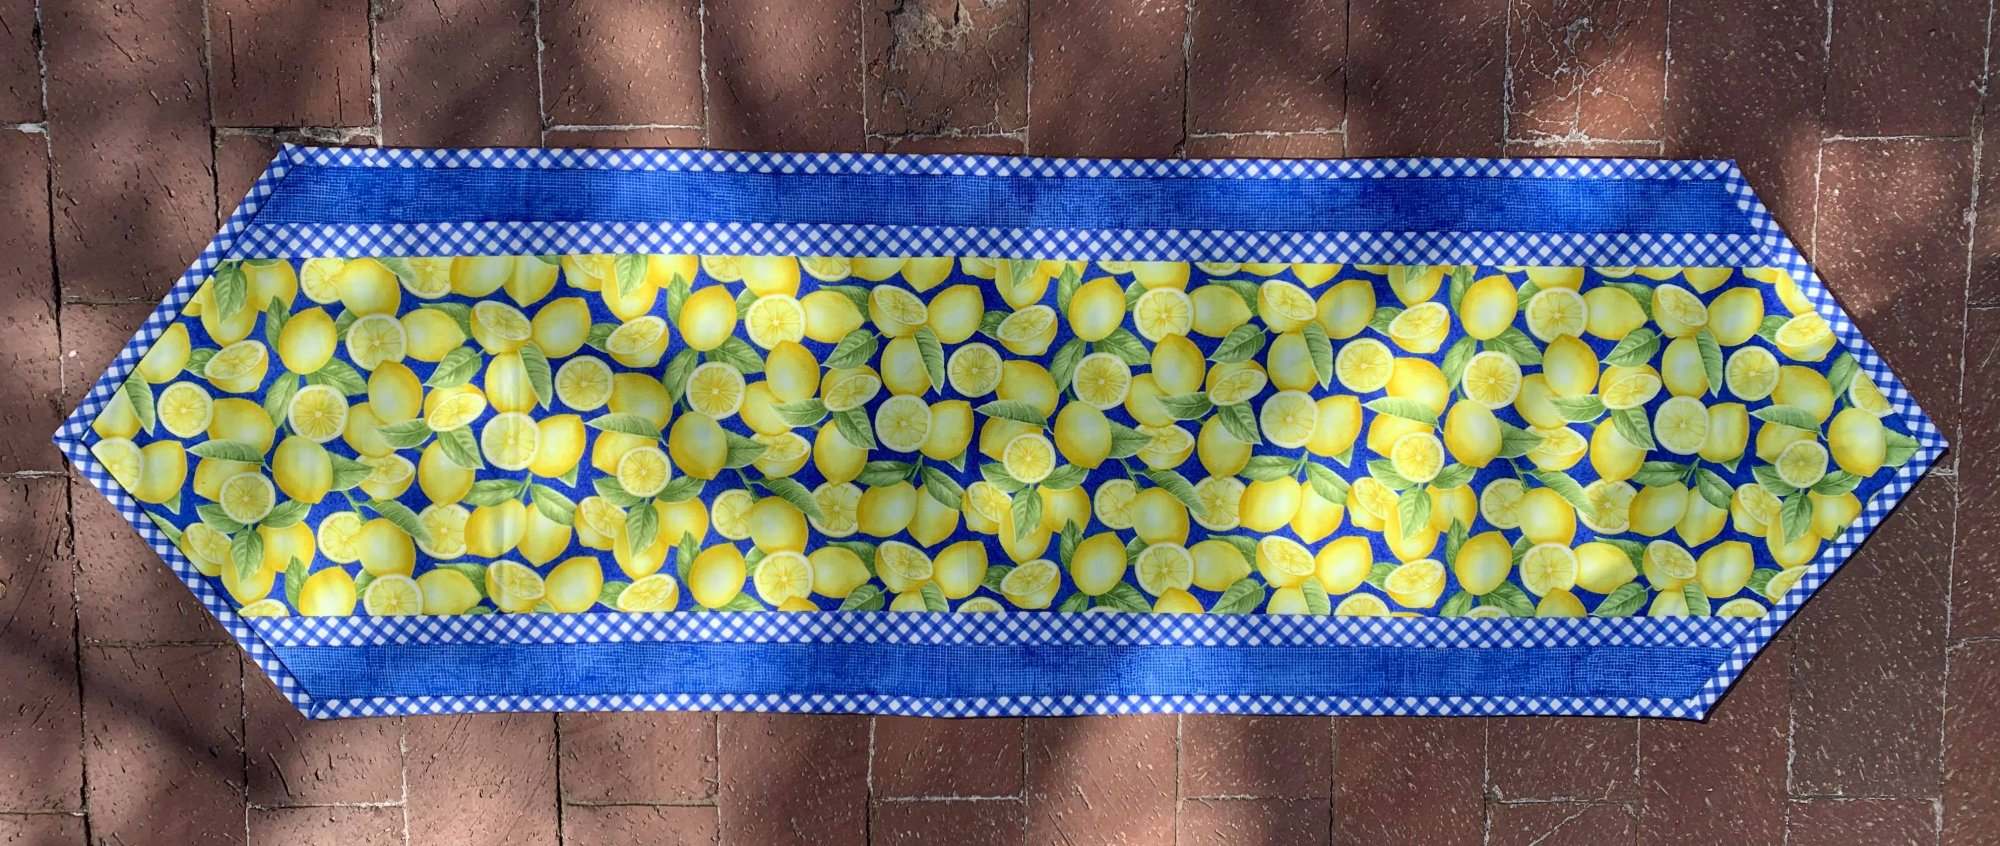 Just Lemons/Big Easy Table Runner  12 1/2 x 40